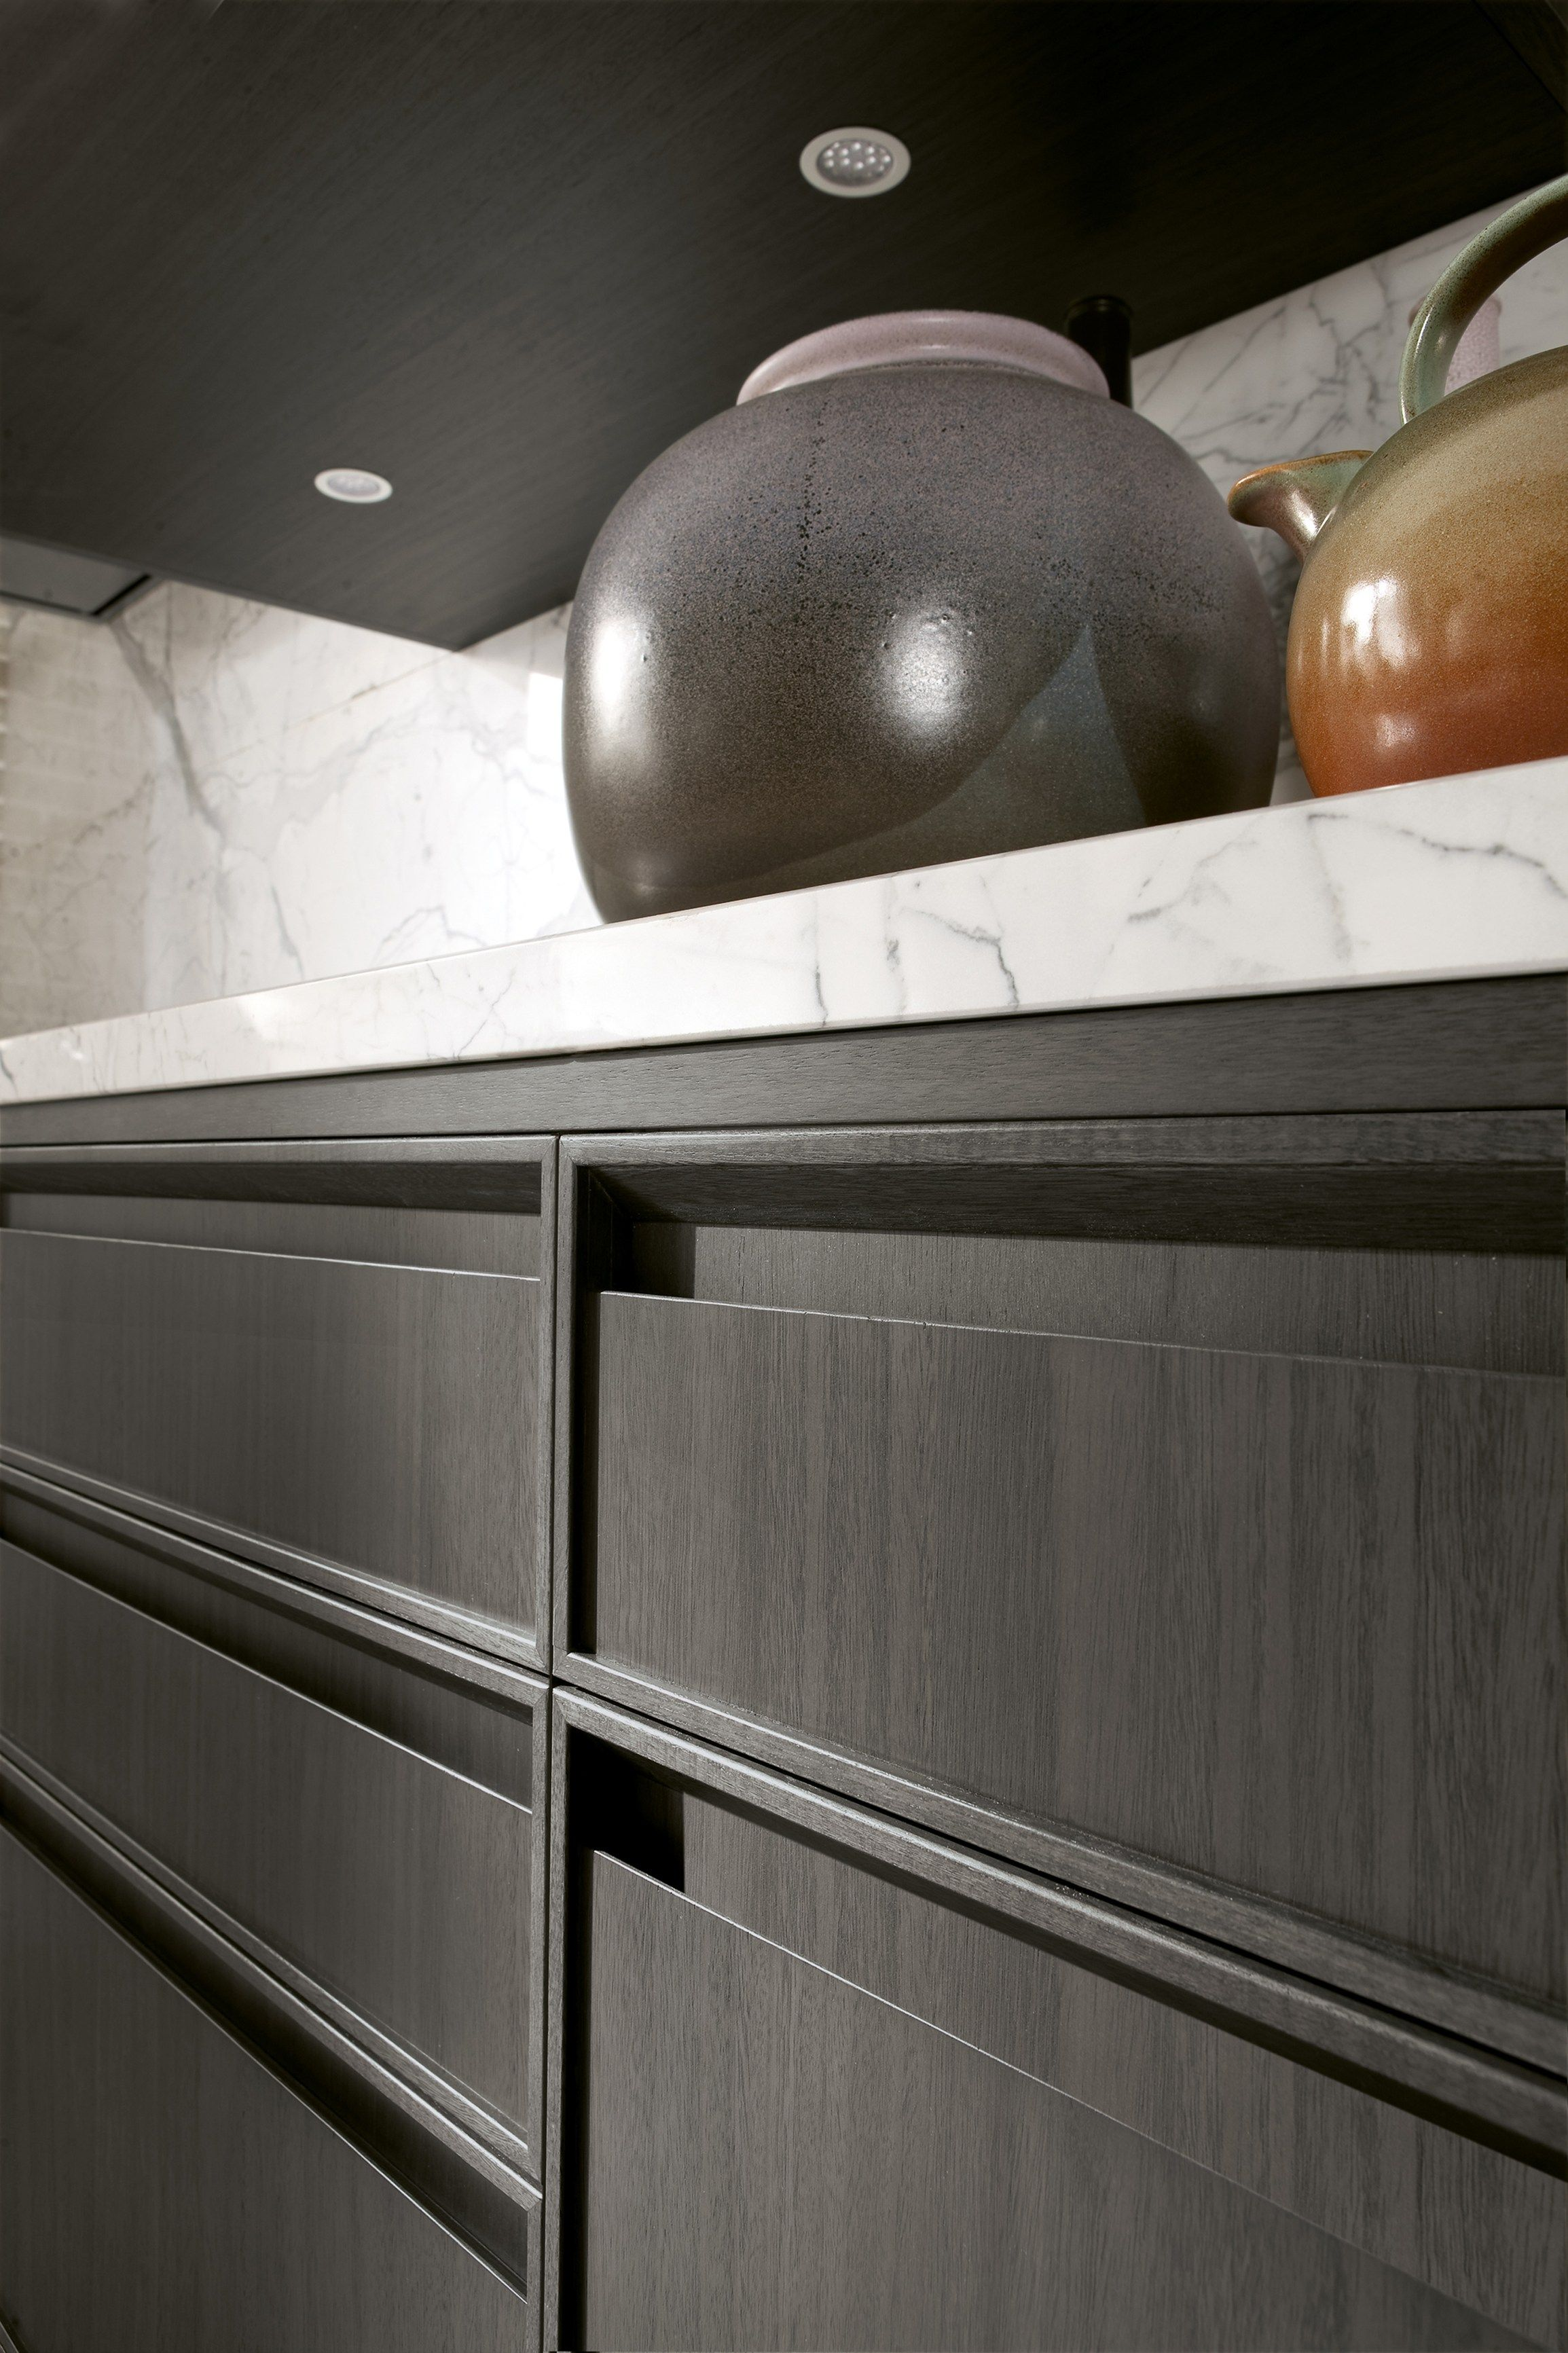 Linear Kitchen With Integrated Handles Timeline Timeline Collection By Aster Cucine Modern Kitchen Cabinets Furniture Handles Integrated Handles